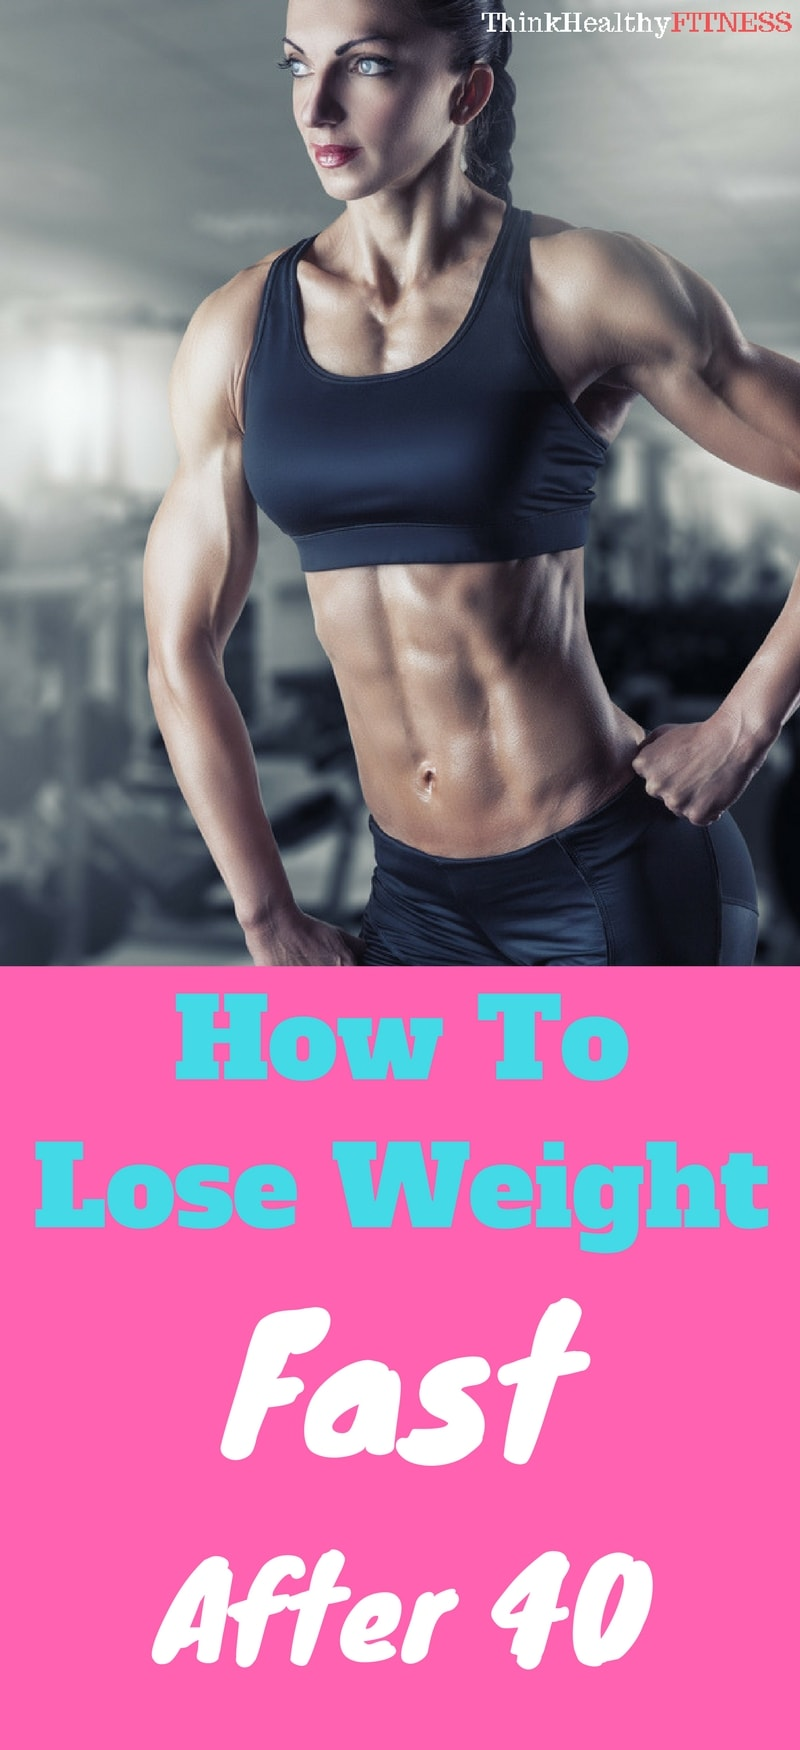 How to Lose Weight Fast After 40